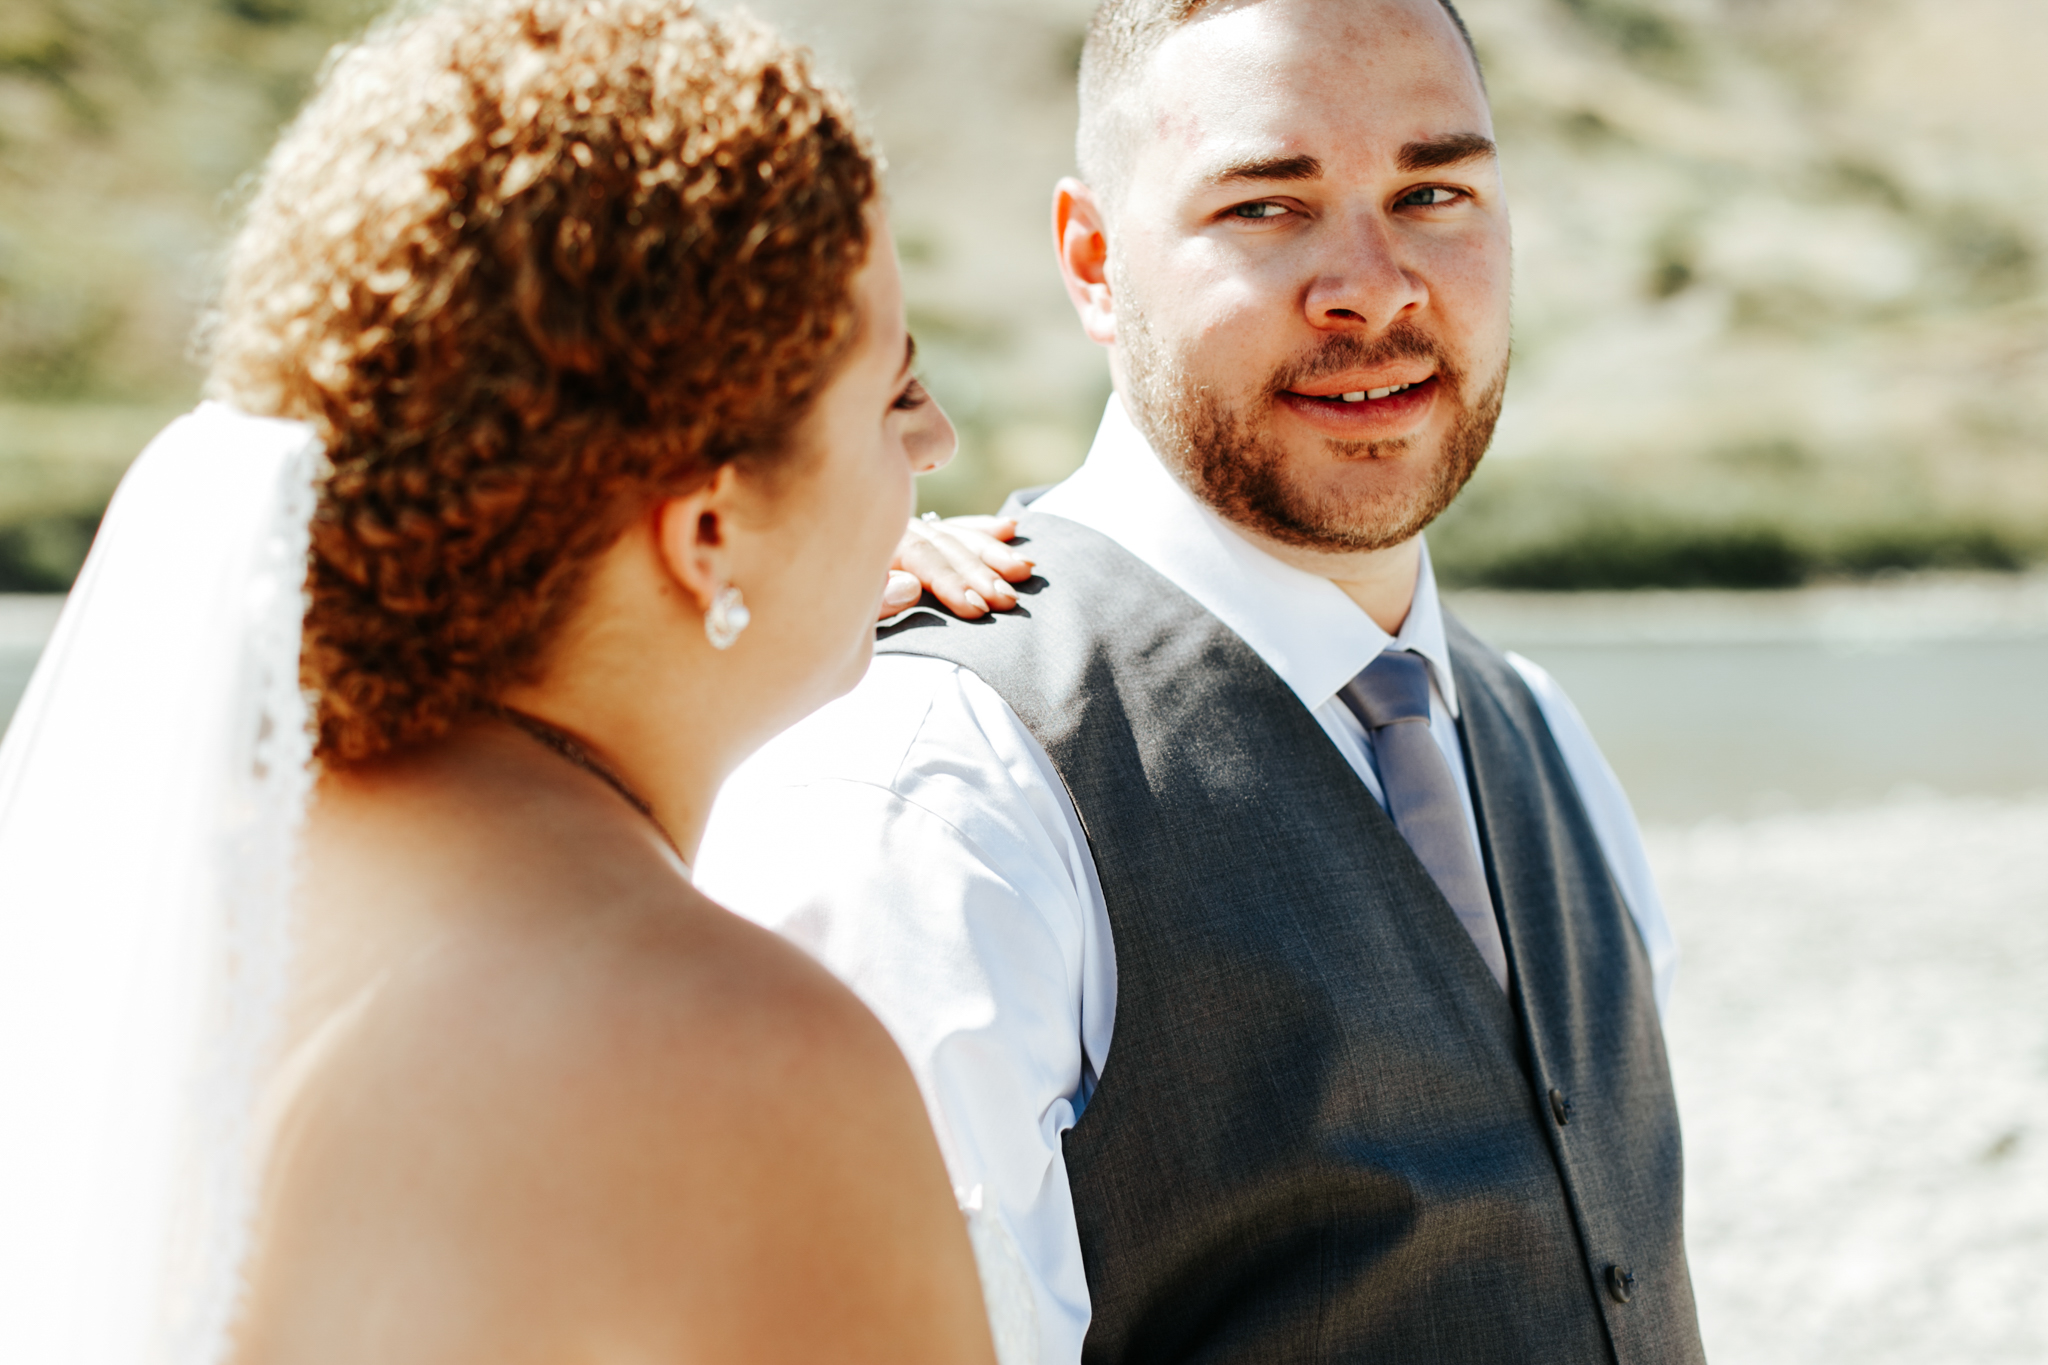 lethbridge-wedding-photographer-love-and-be-loved-photography-trent-danielle-galt-reception-picture-image-photo-125.jpg